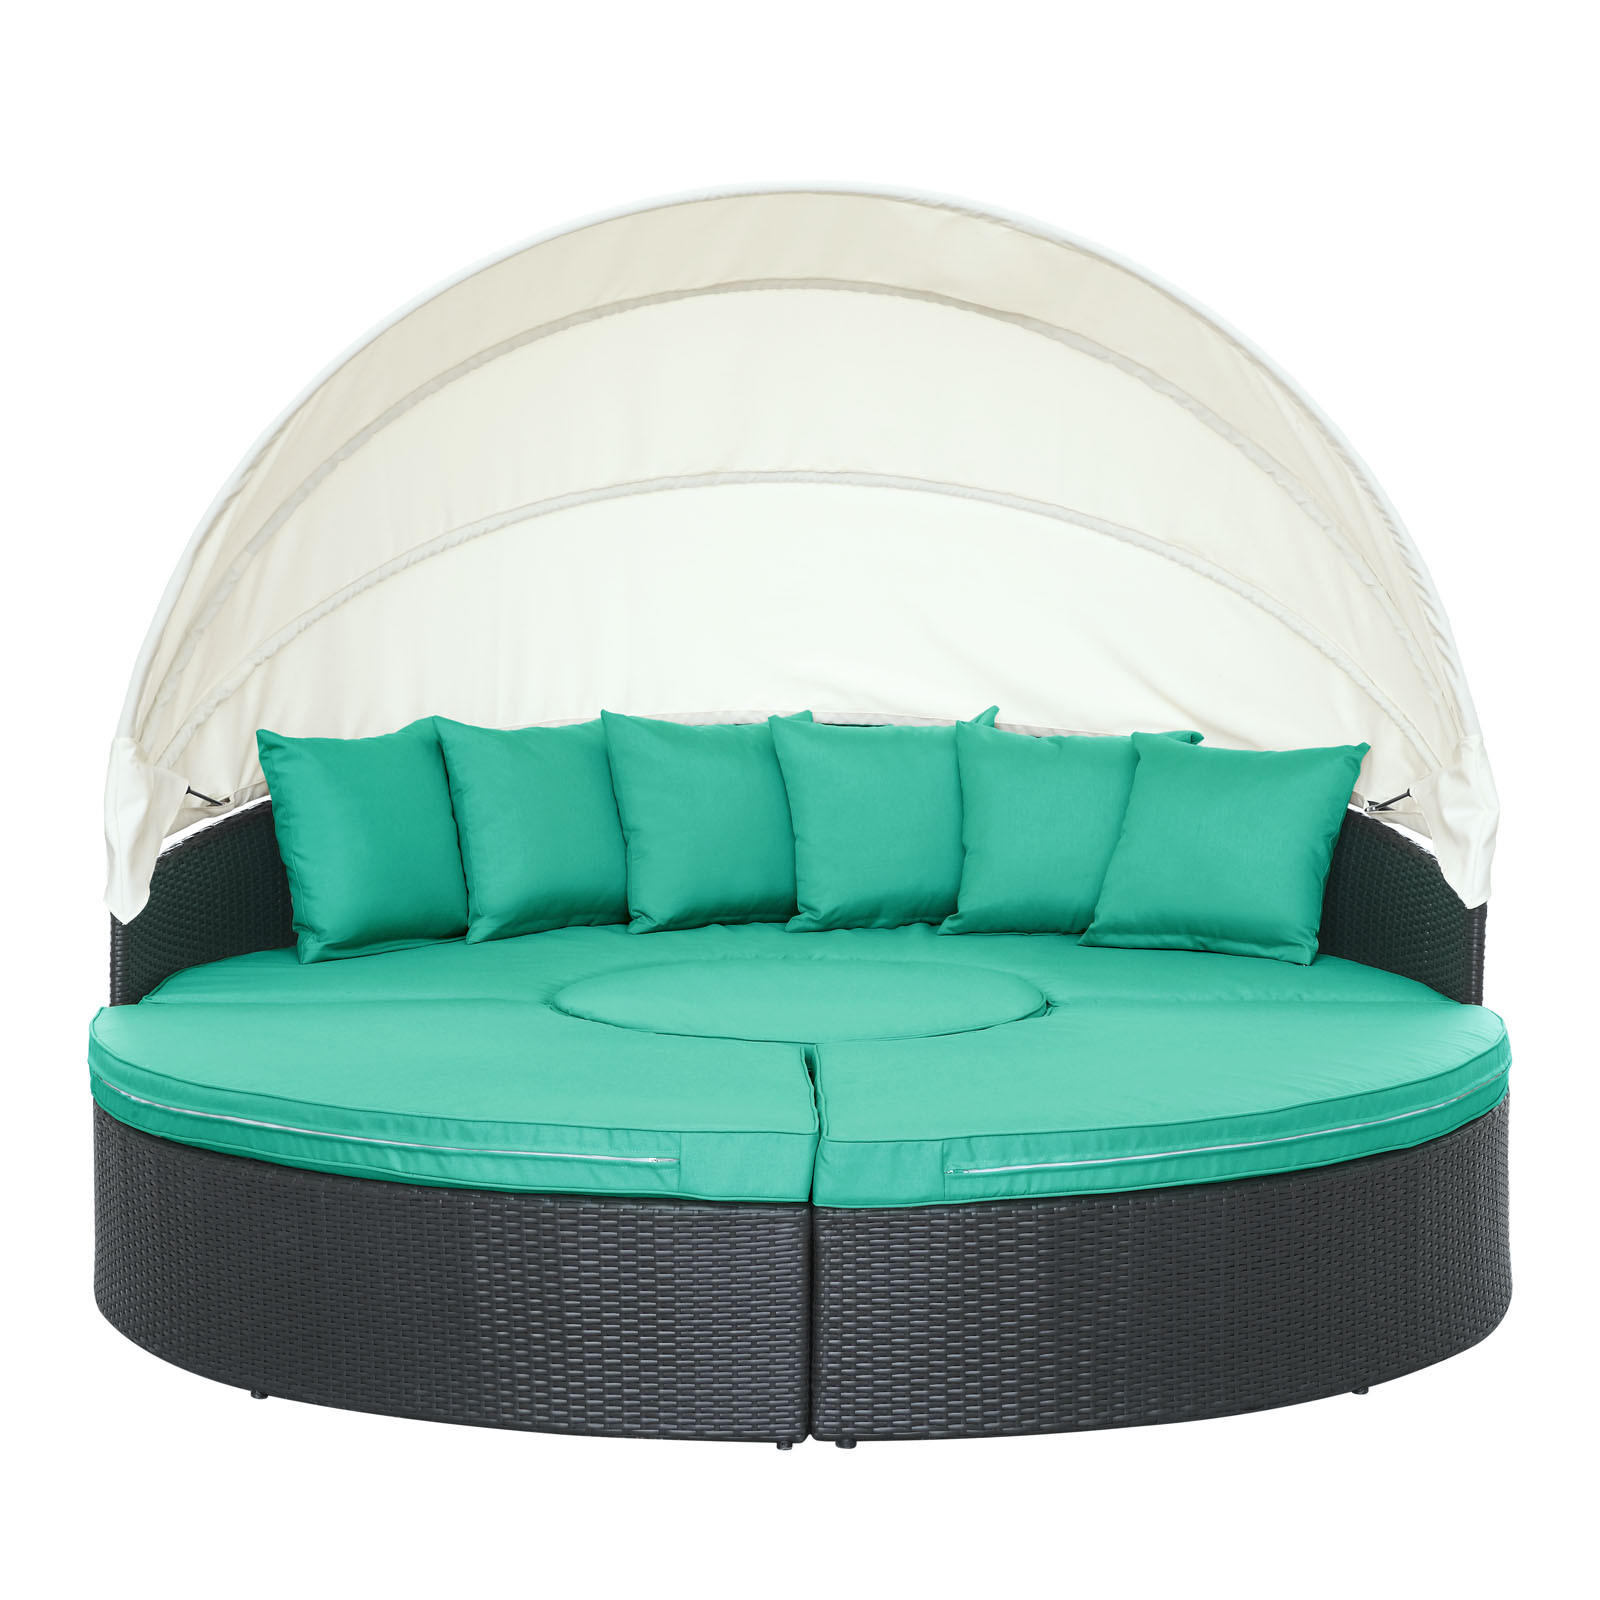 Quest Canopy Outdoor Patio Daybed in from Contemporary